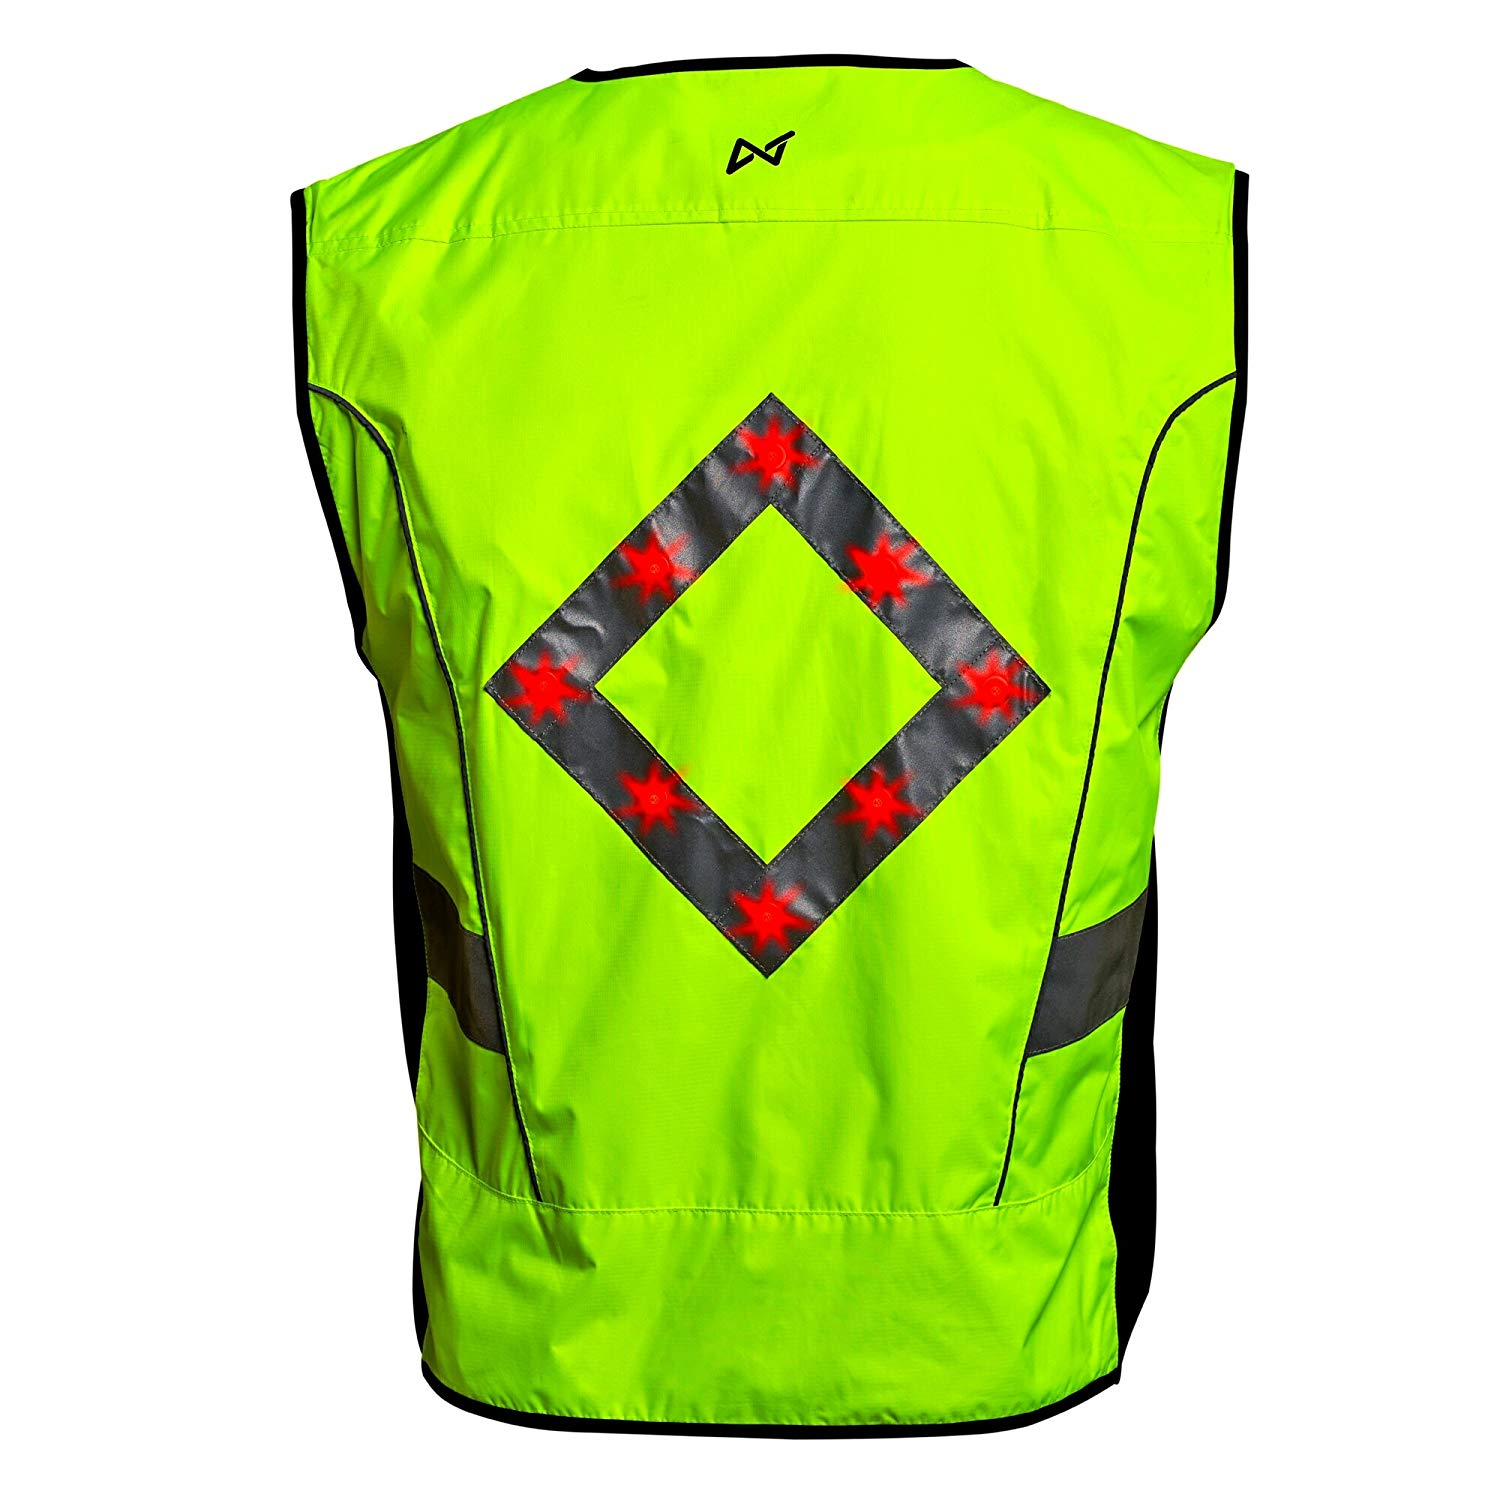 In 2019 Latest Design Reflective Safety Vest Cycling Bike Bicycle Vest Sleeveless Night Running Security Riding Outdoor Protection Excellent Quality